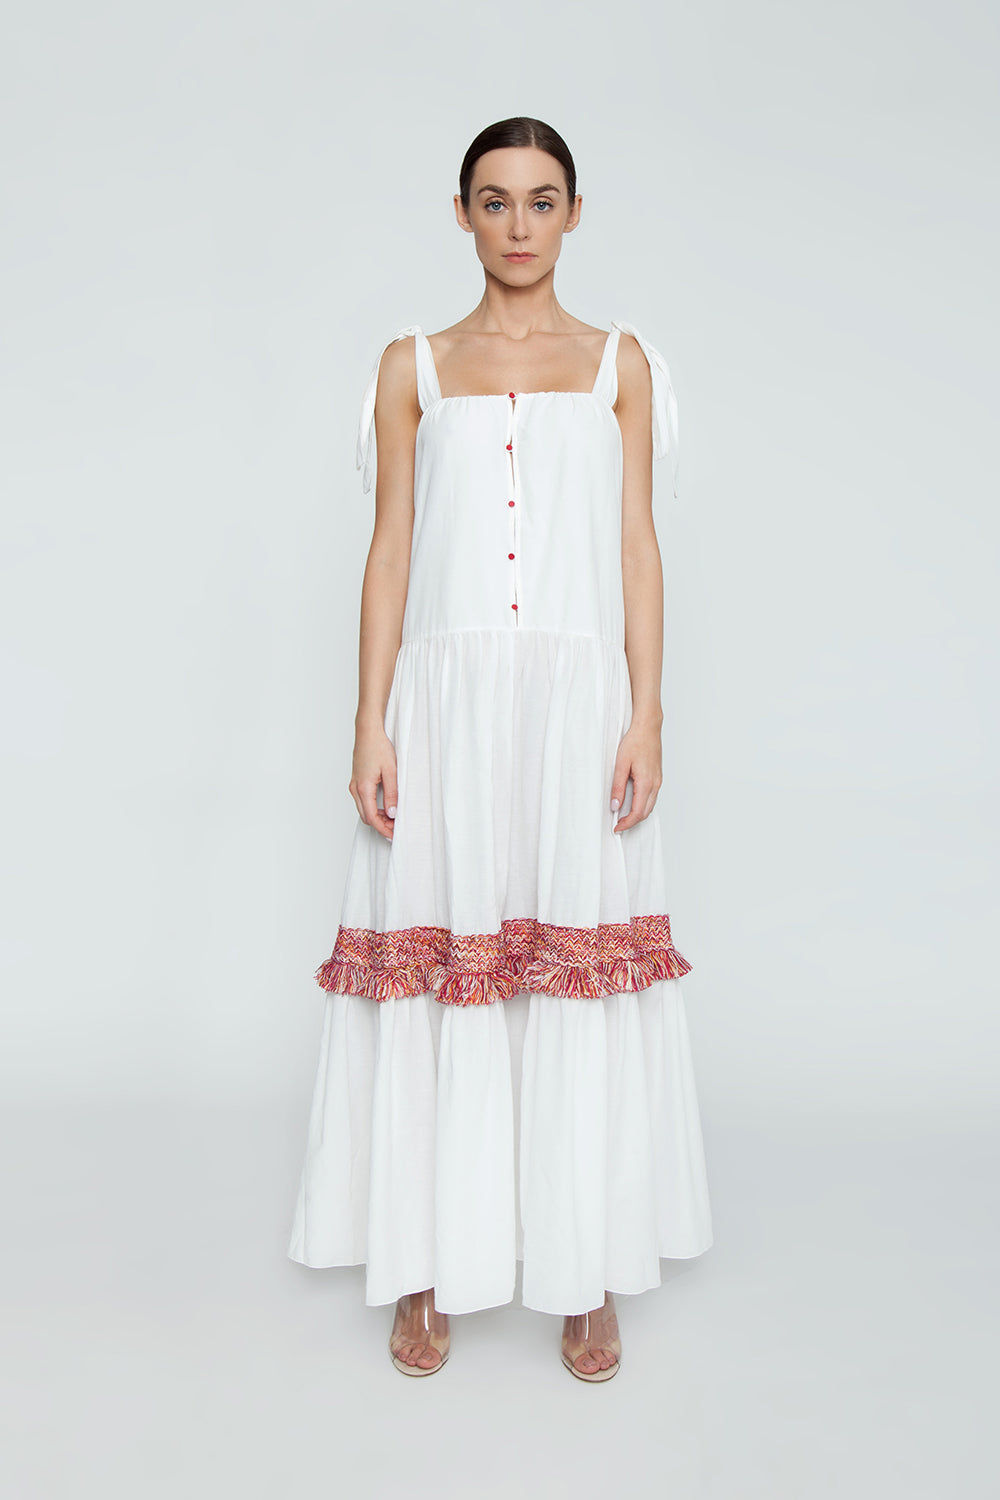 CLUBE BOSSA Bolkan Shoulder Tie Long Dress -  White & Jazzy Fringes Red Dress | White & Jazzy Fringes Red| CLUBE BOSSA Bolkan Shoulder Tie Long Dress - White & Jazzy Fringes Red Features:  Square neckline white long dress Shoulder tie straps Buttoned design Loose fit Front View